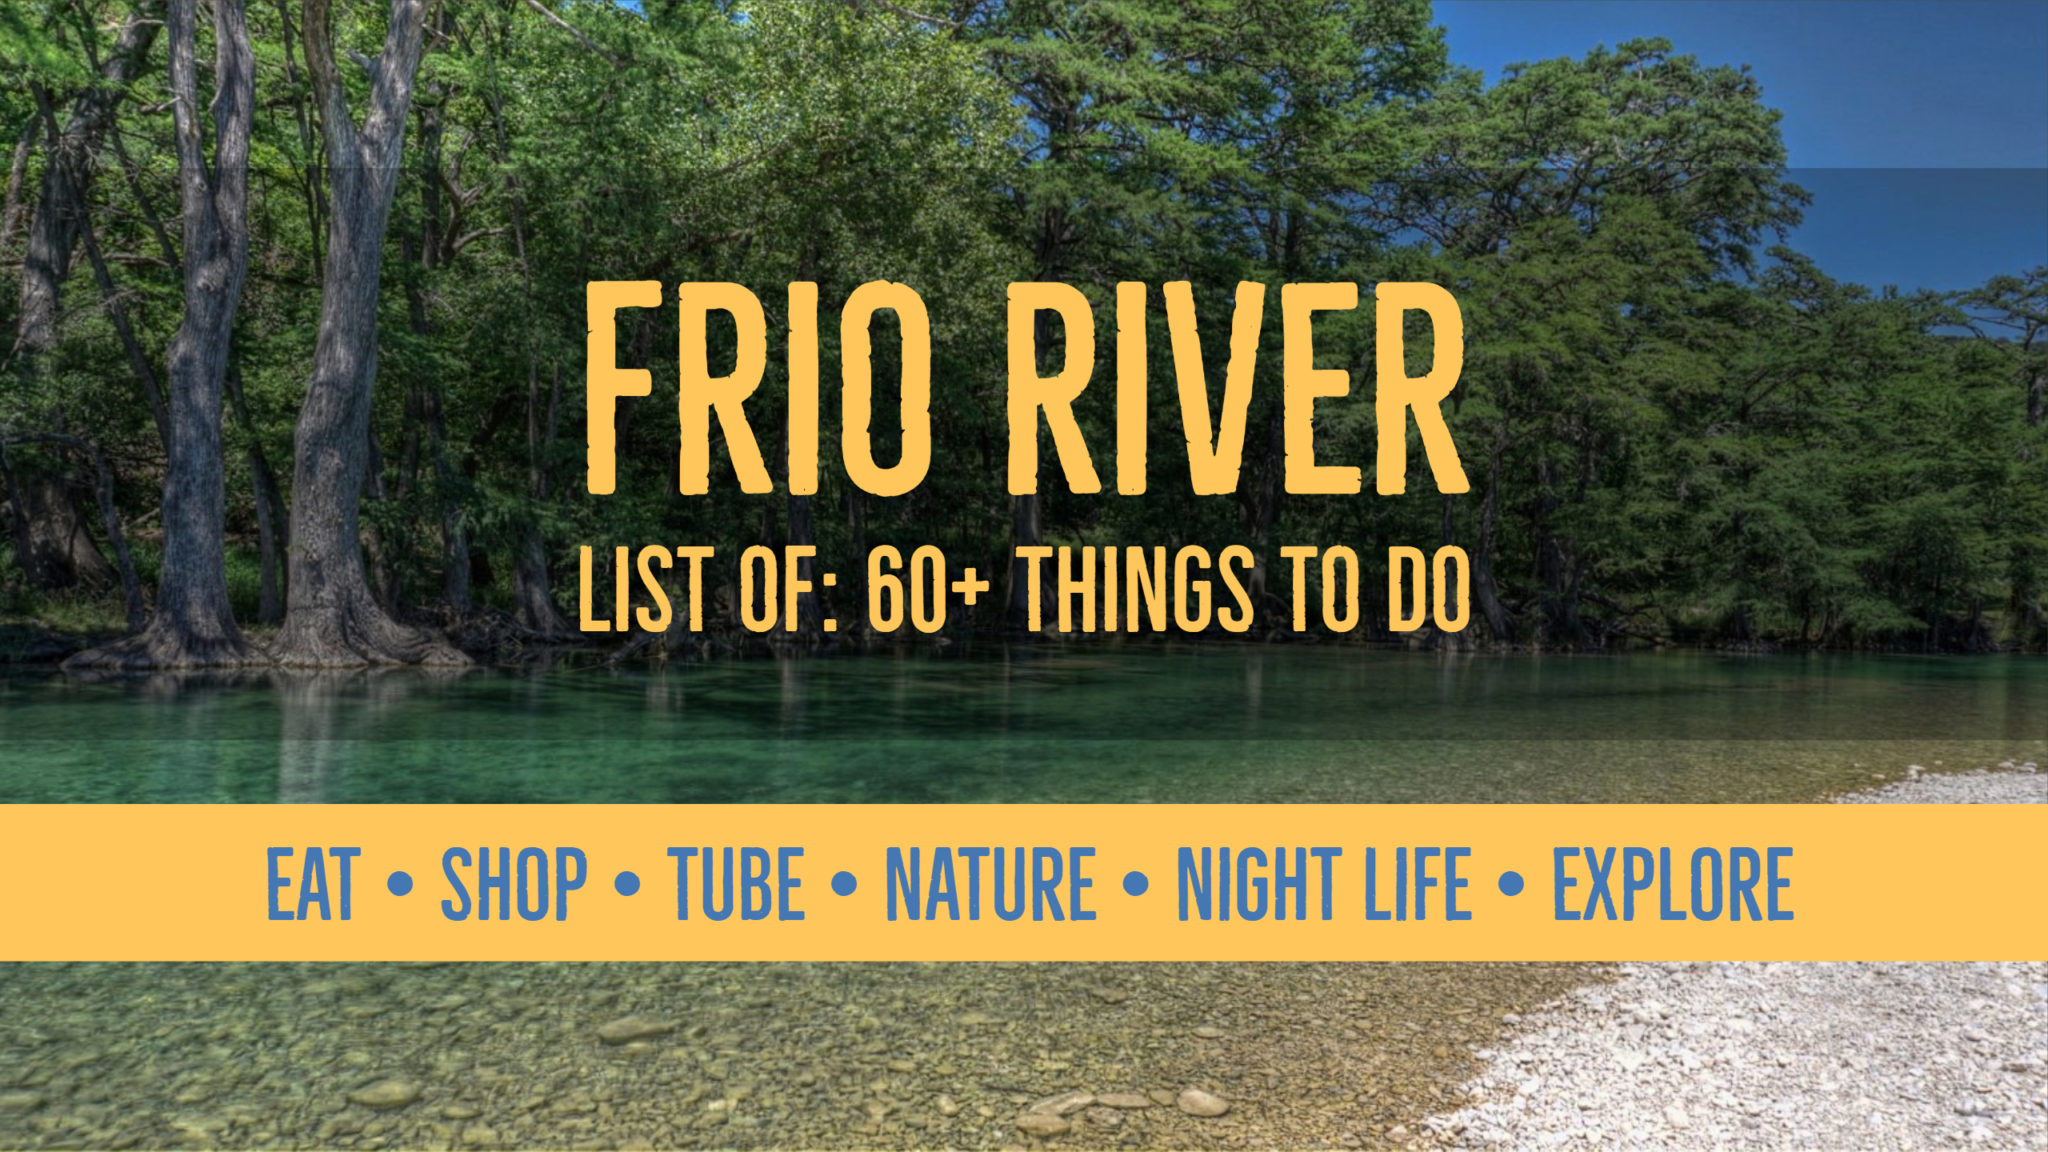 List of Things To Do at the Frio River | 60+ Attractions